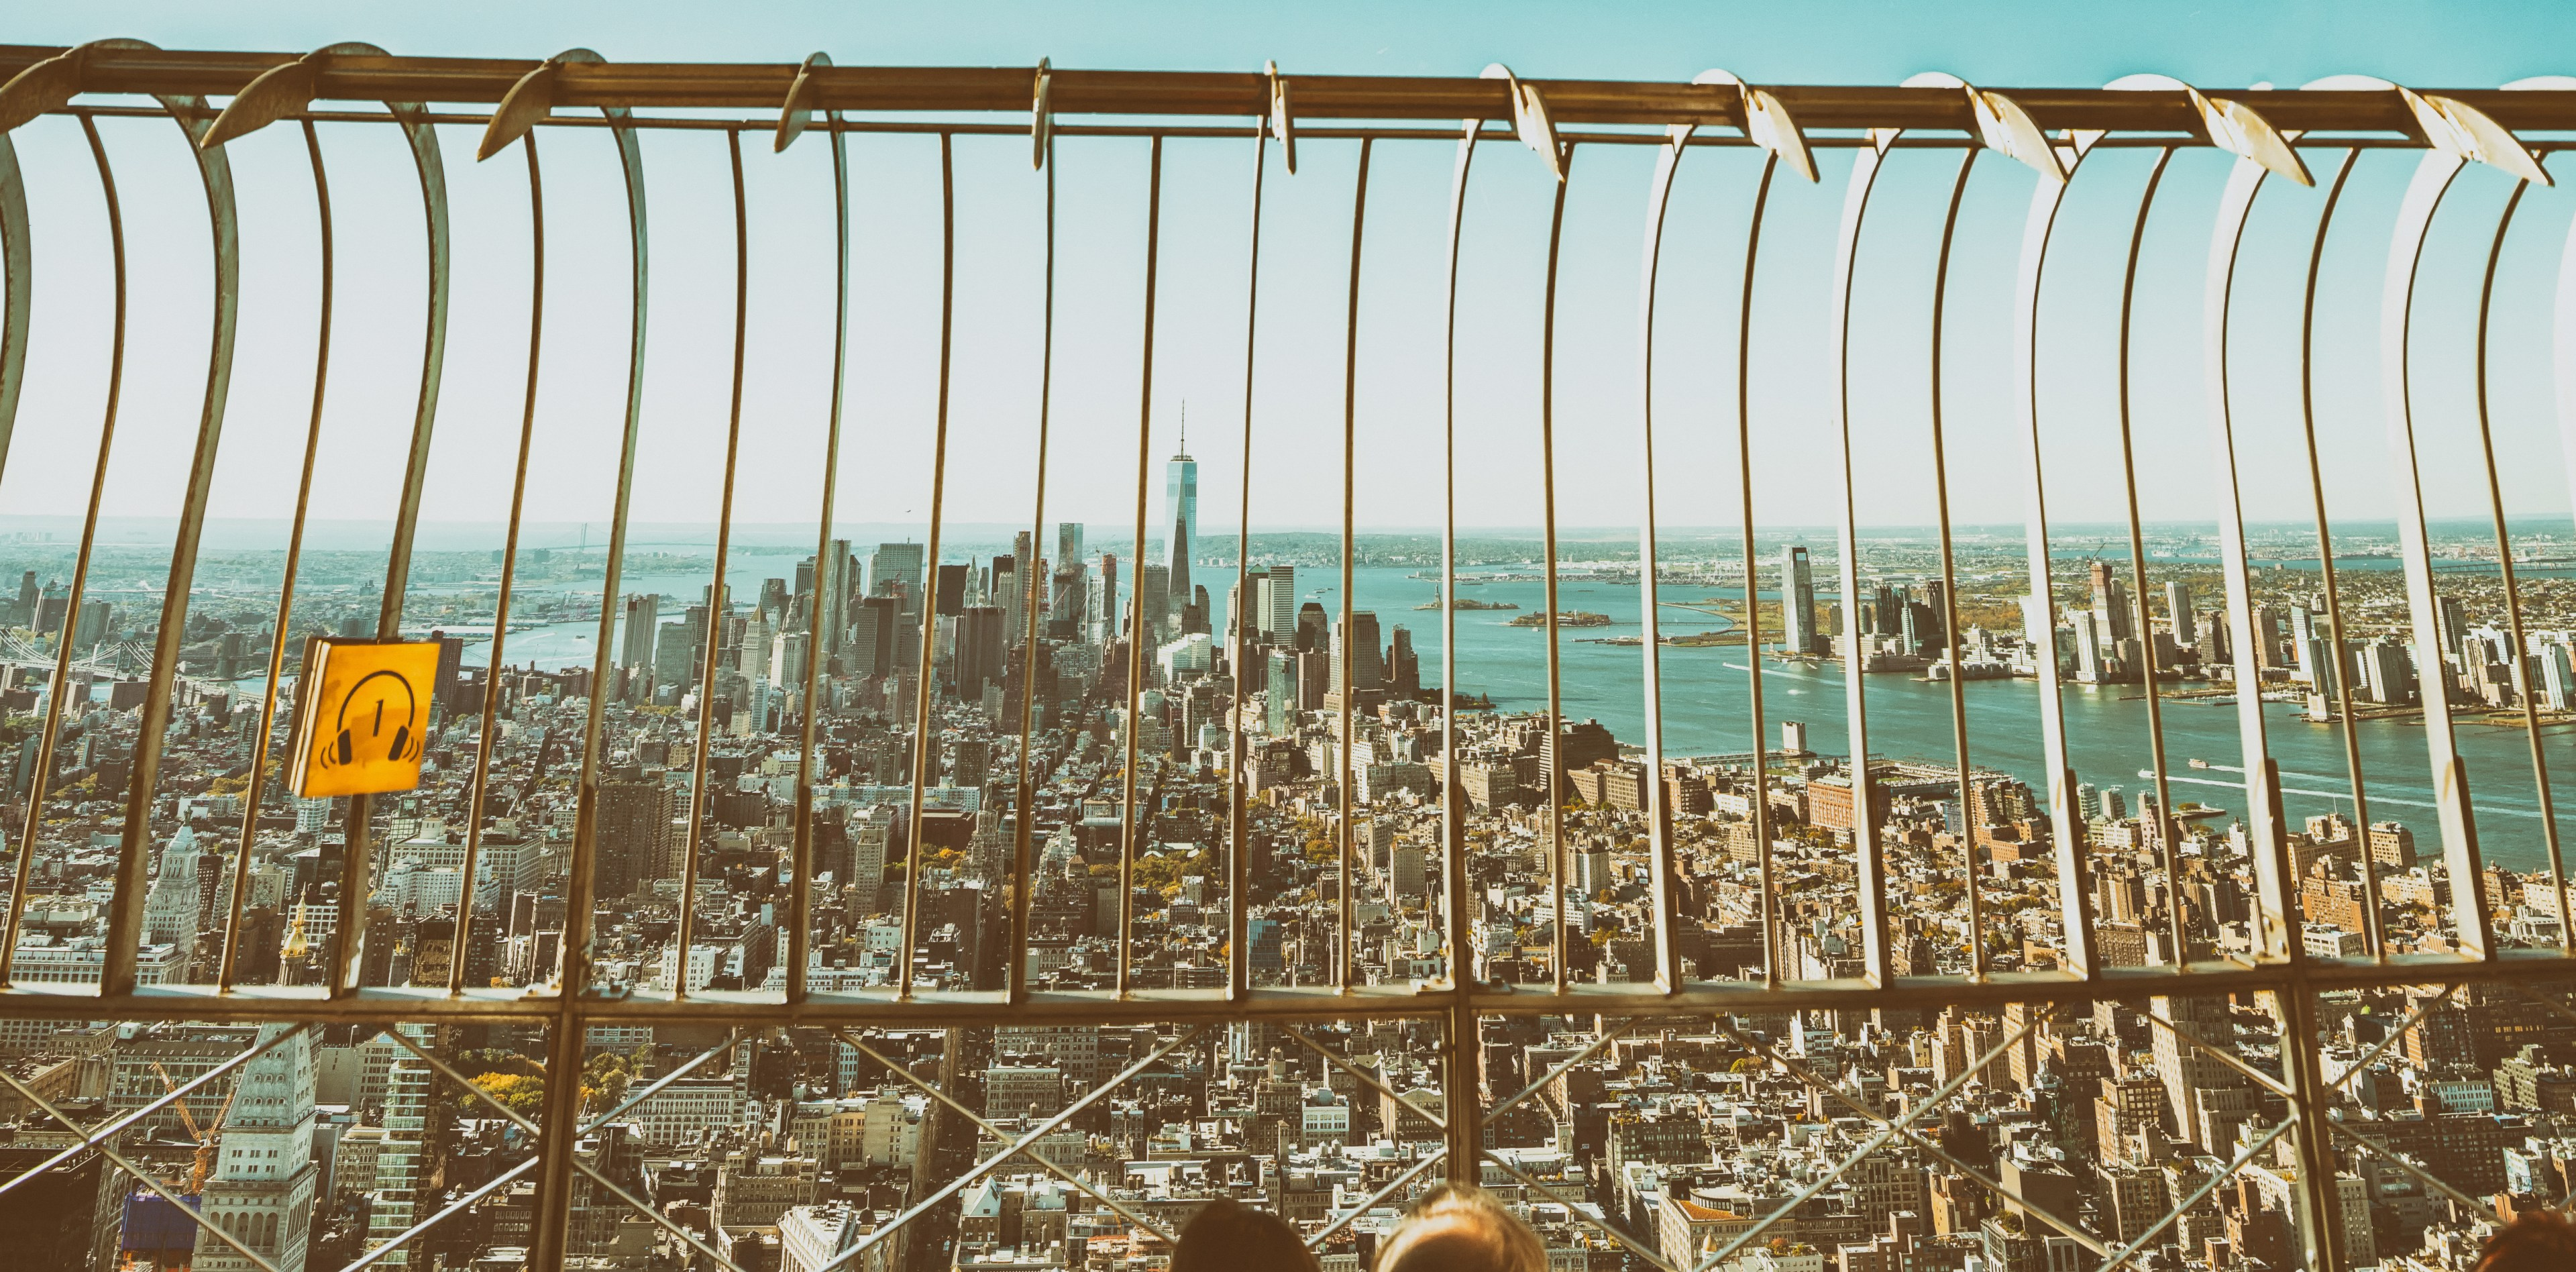 Metal fence barrier protecting an oberservation deck on the Empire State Building in New York City.